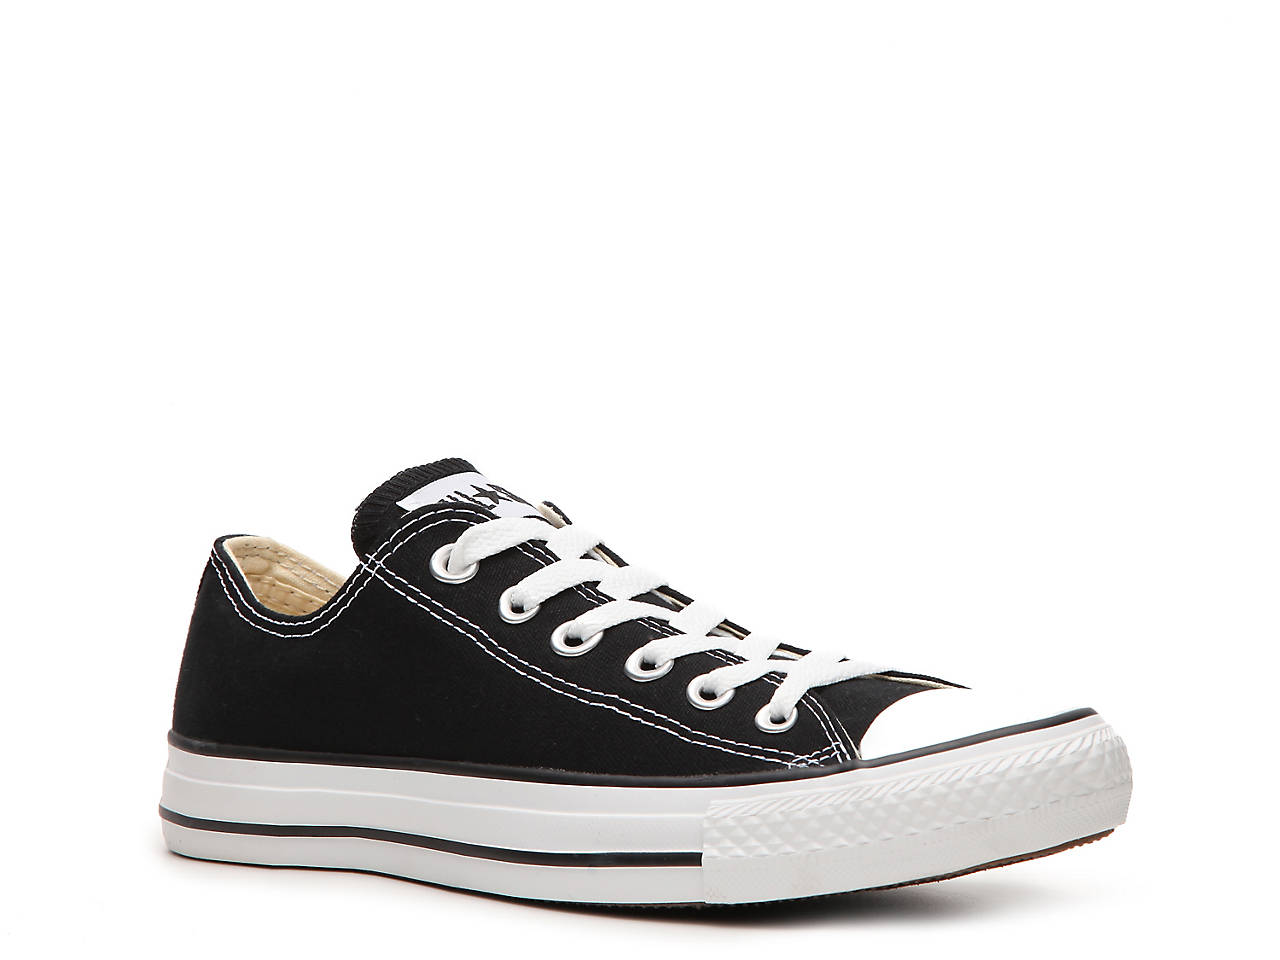 e03e2379d0910a Converse Chuck Taylor All Star Sneaker - Women s Women s Shoes